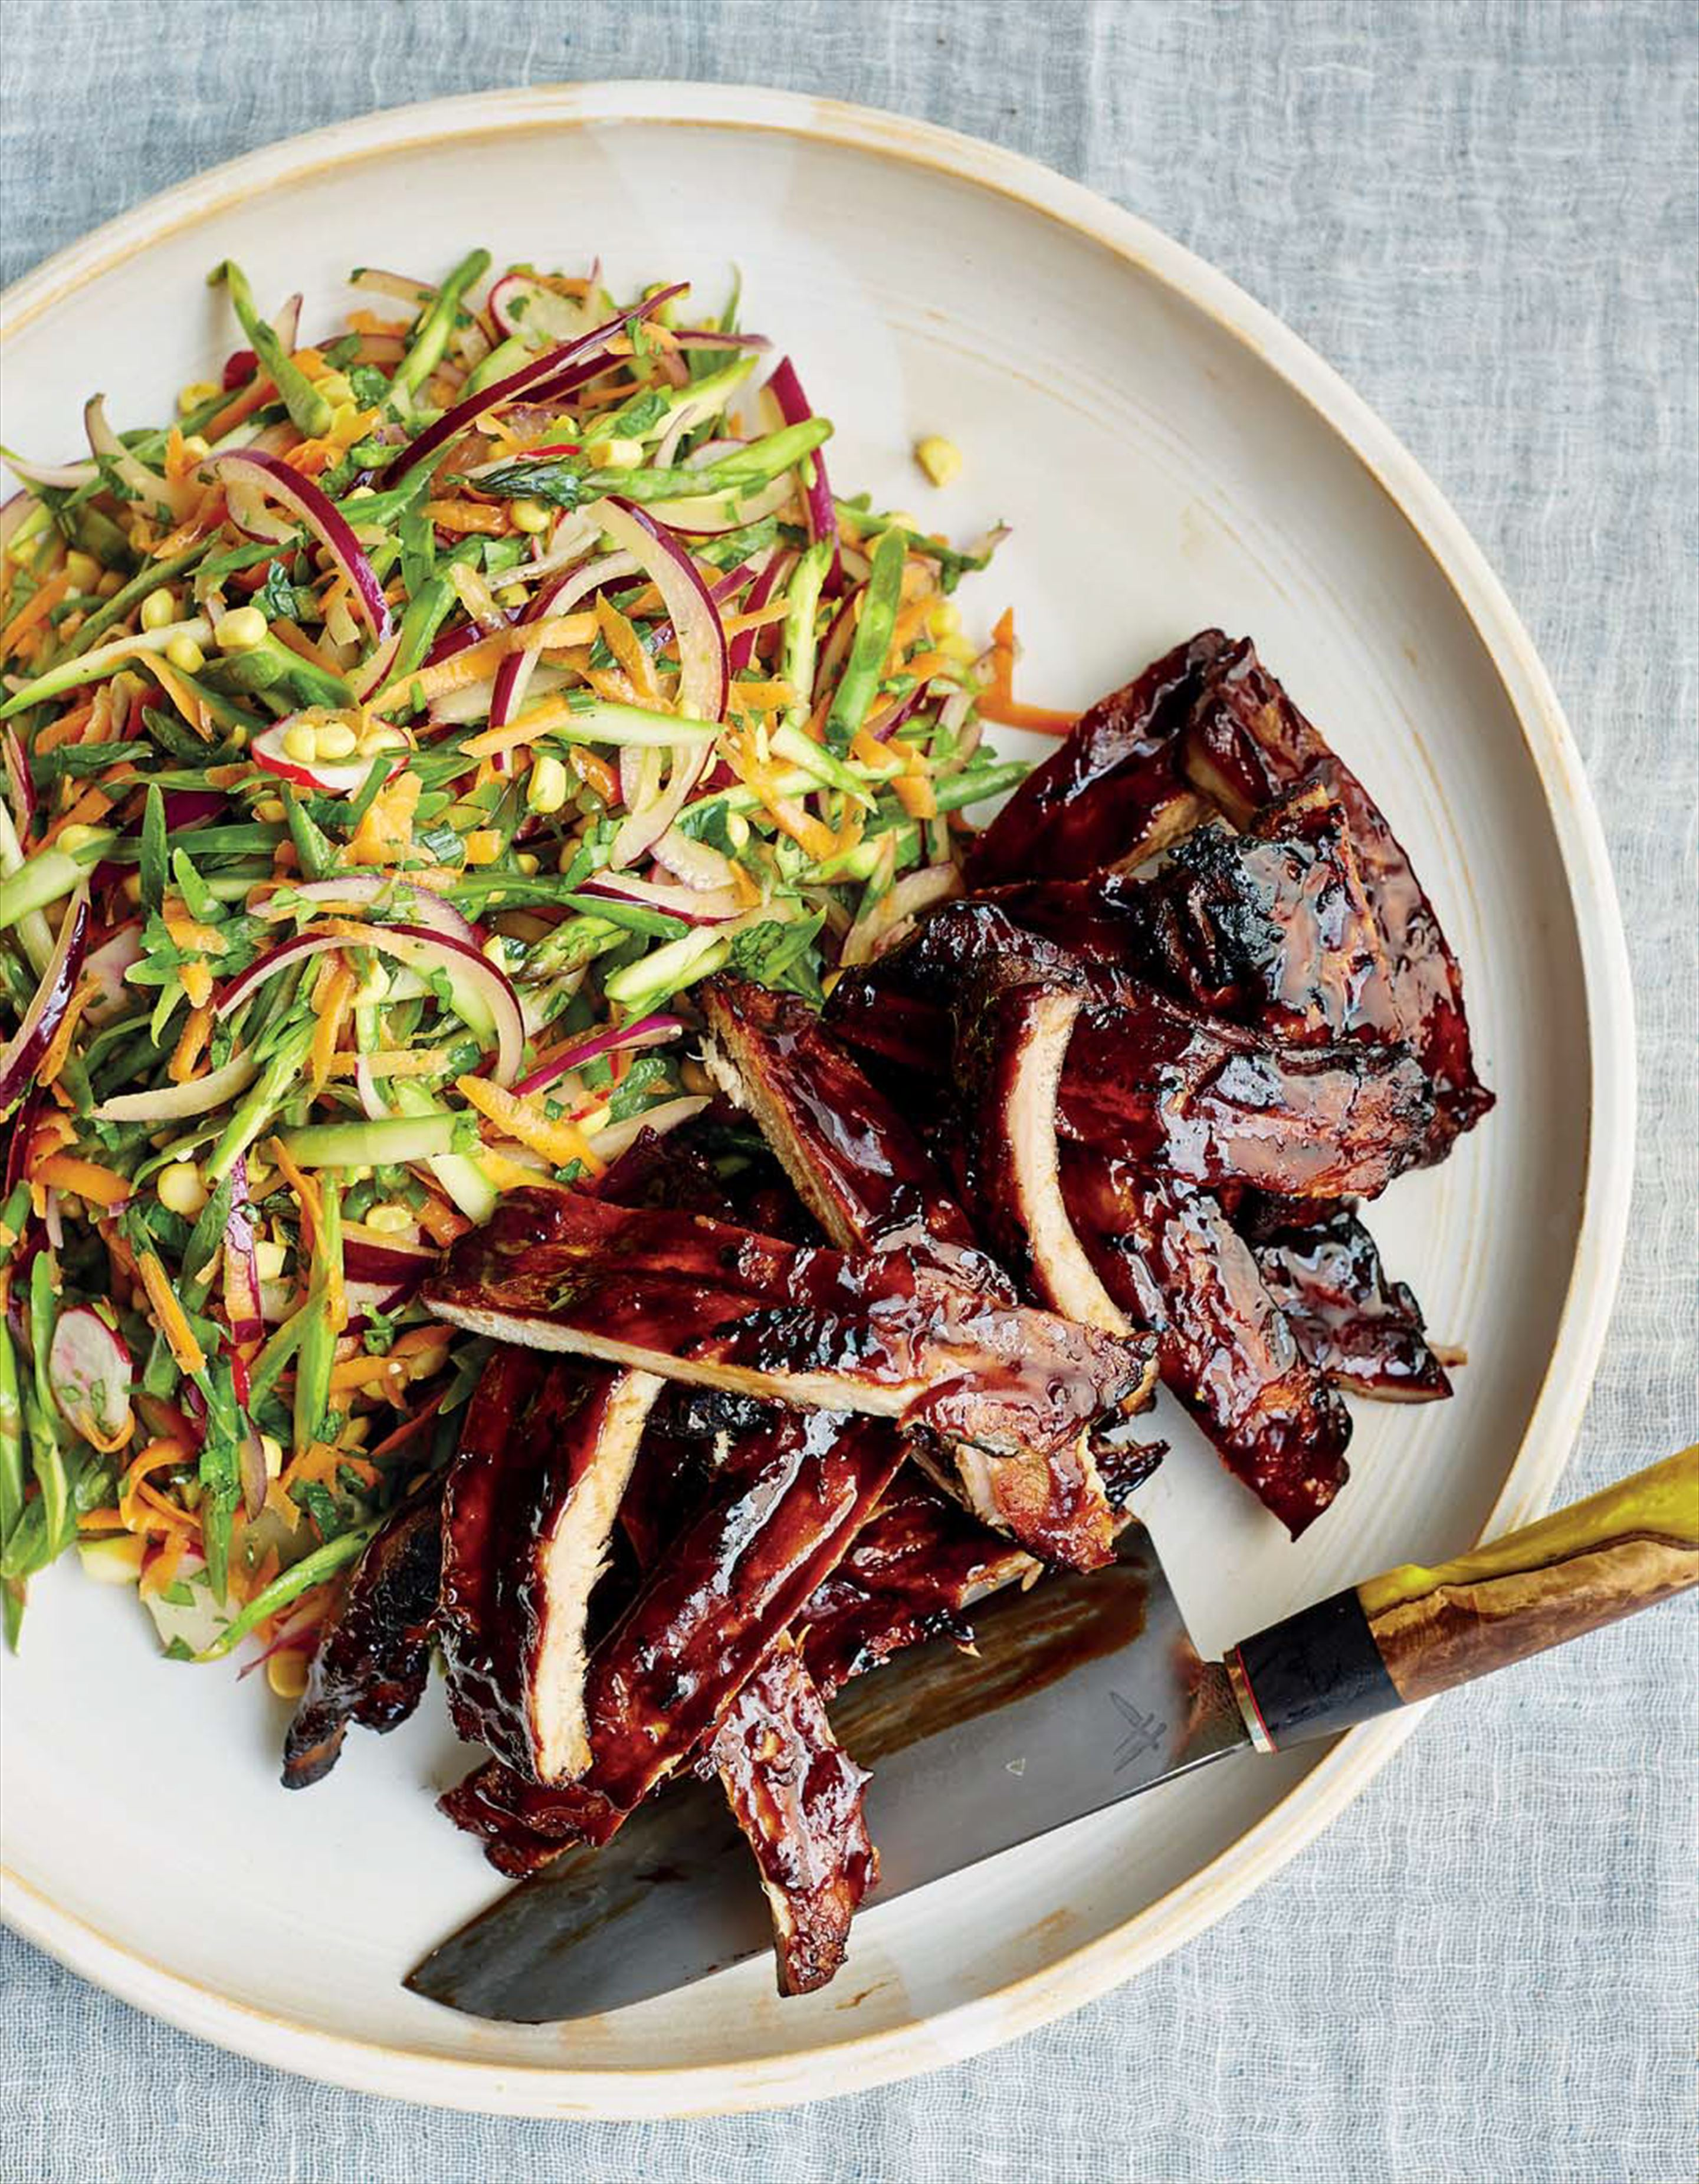 Barbecued ribs with summer vegetable slaw